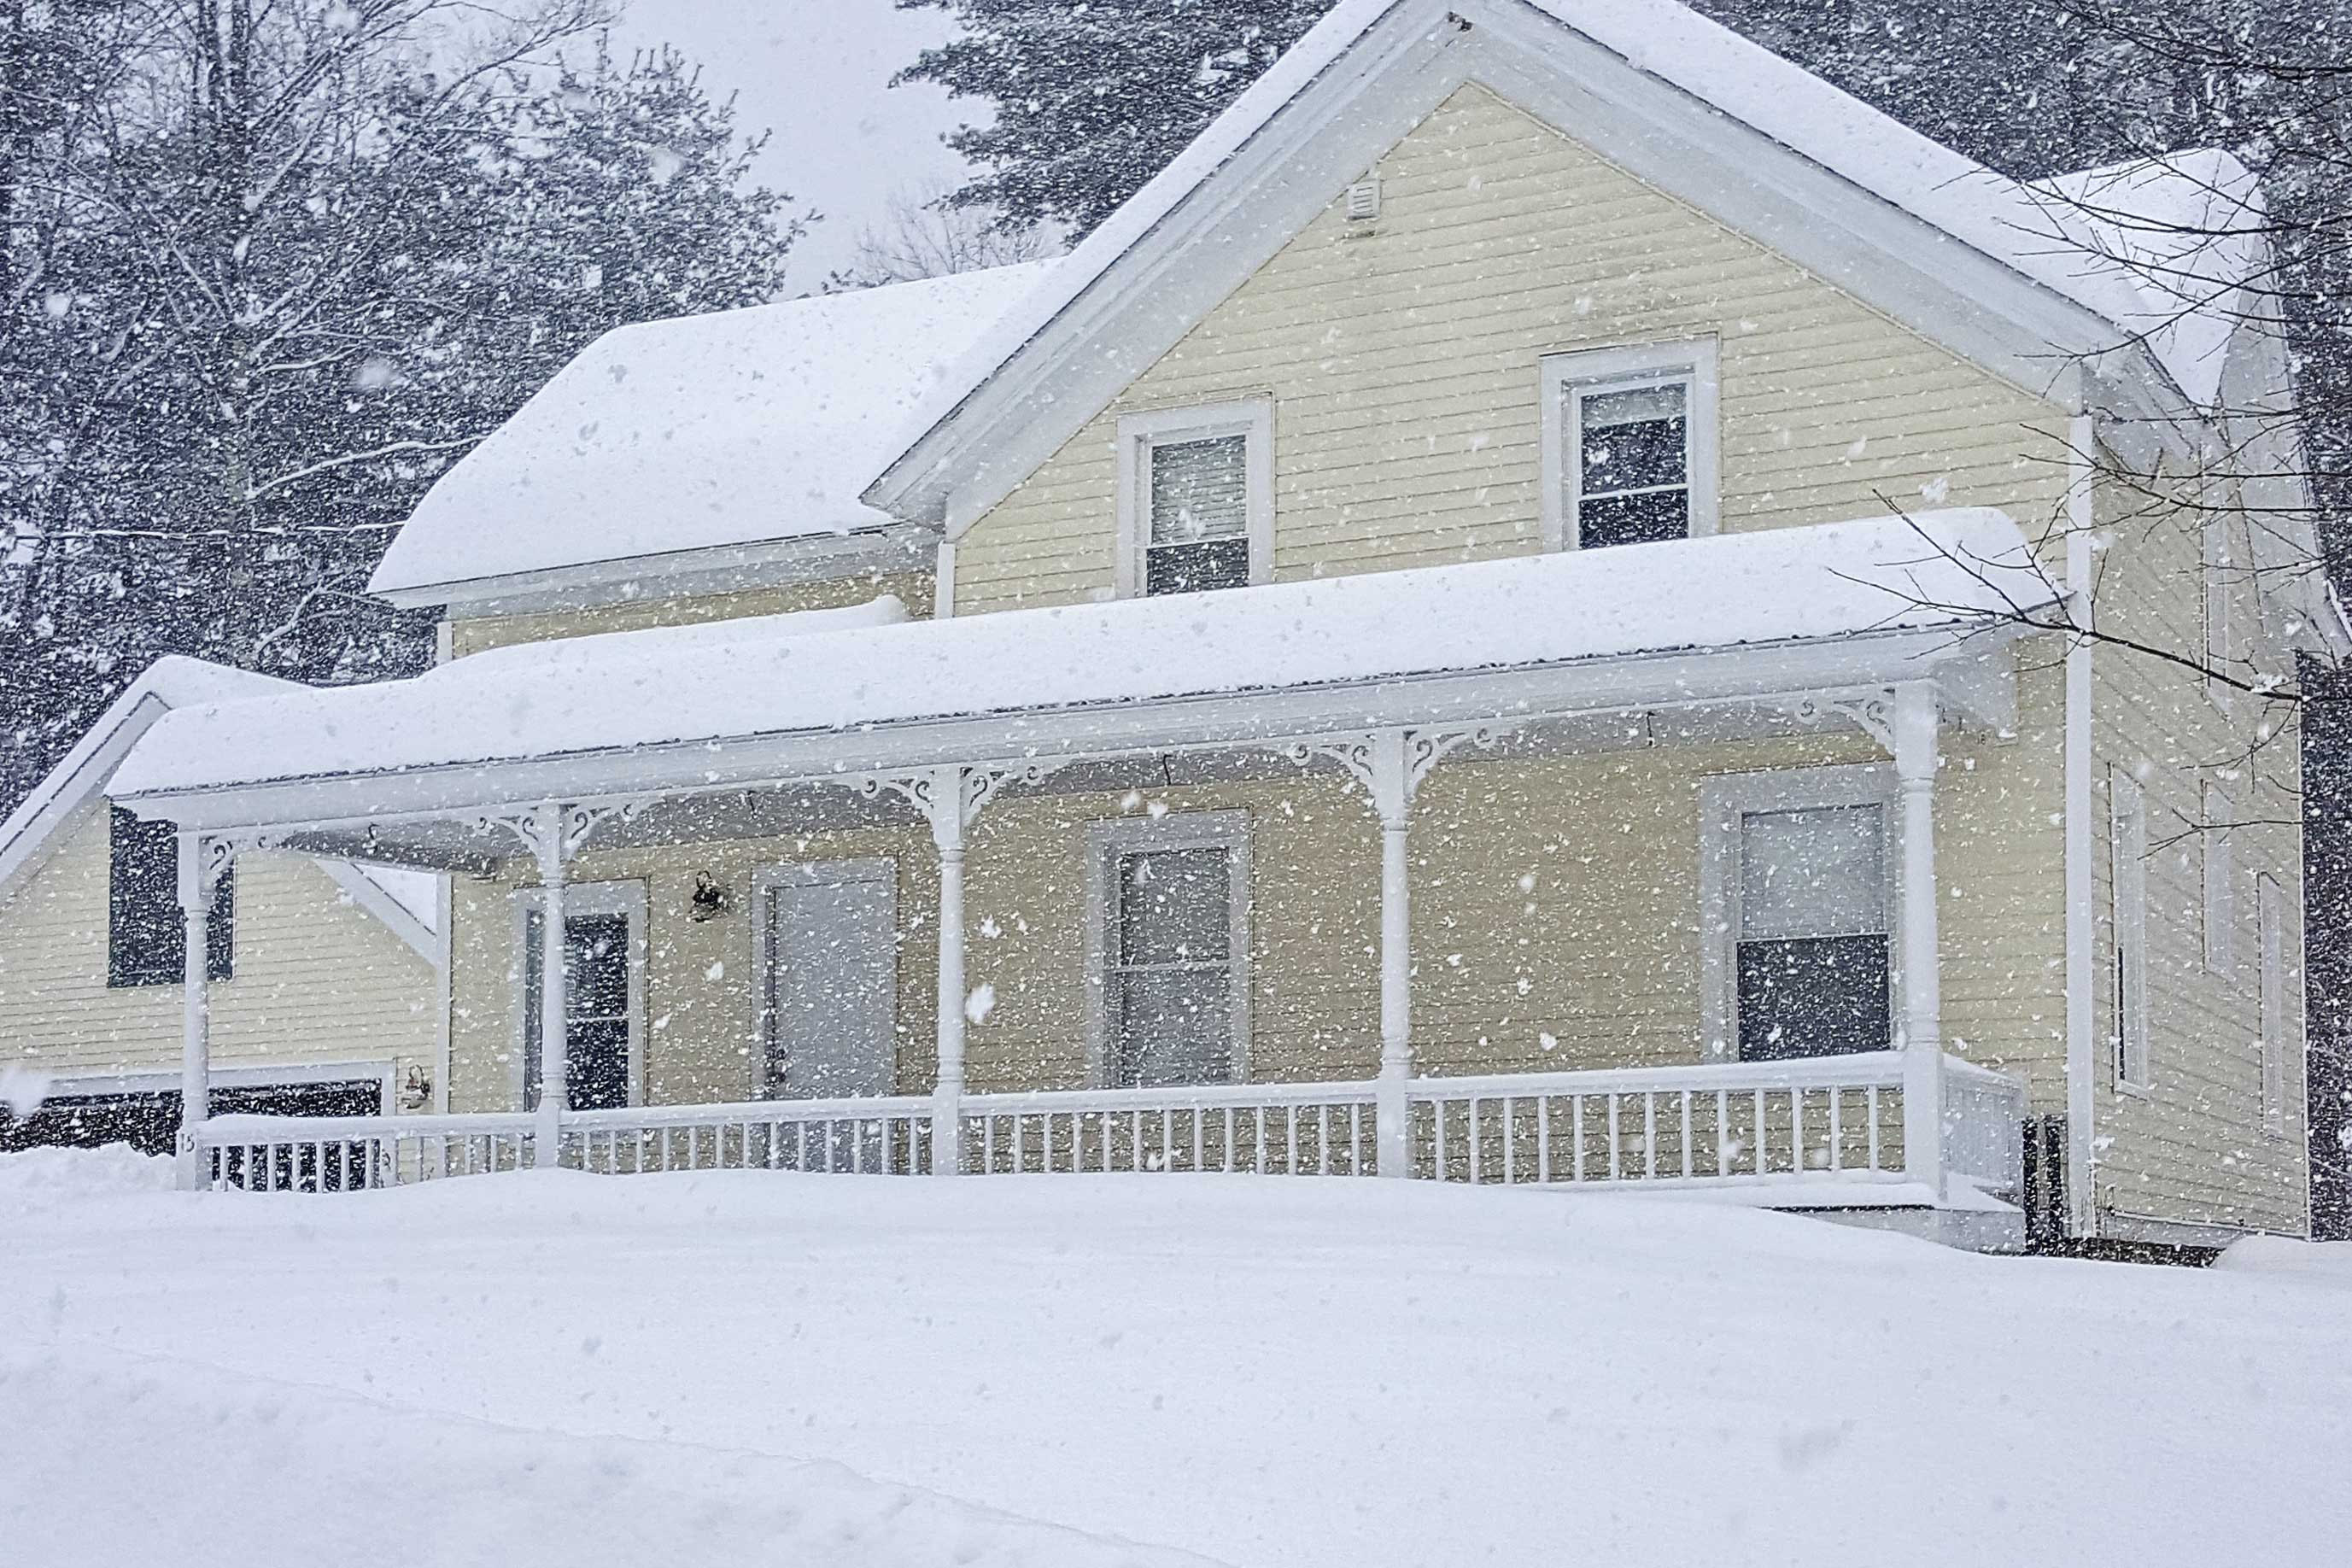 Upstate New York transforms into a picturesque snowglobe come wintertime!